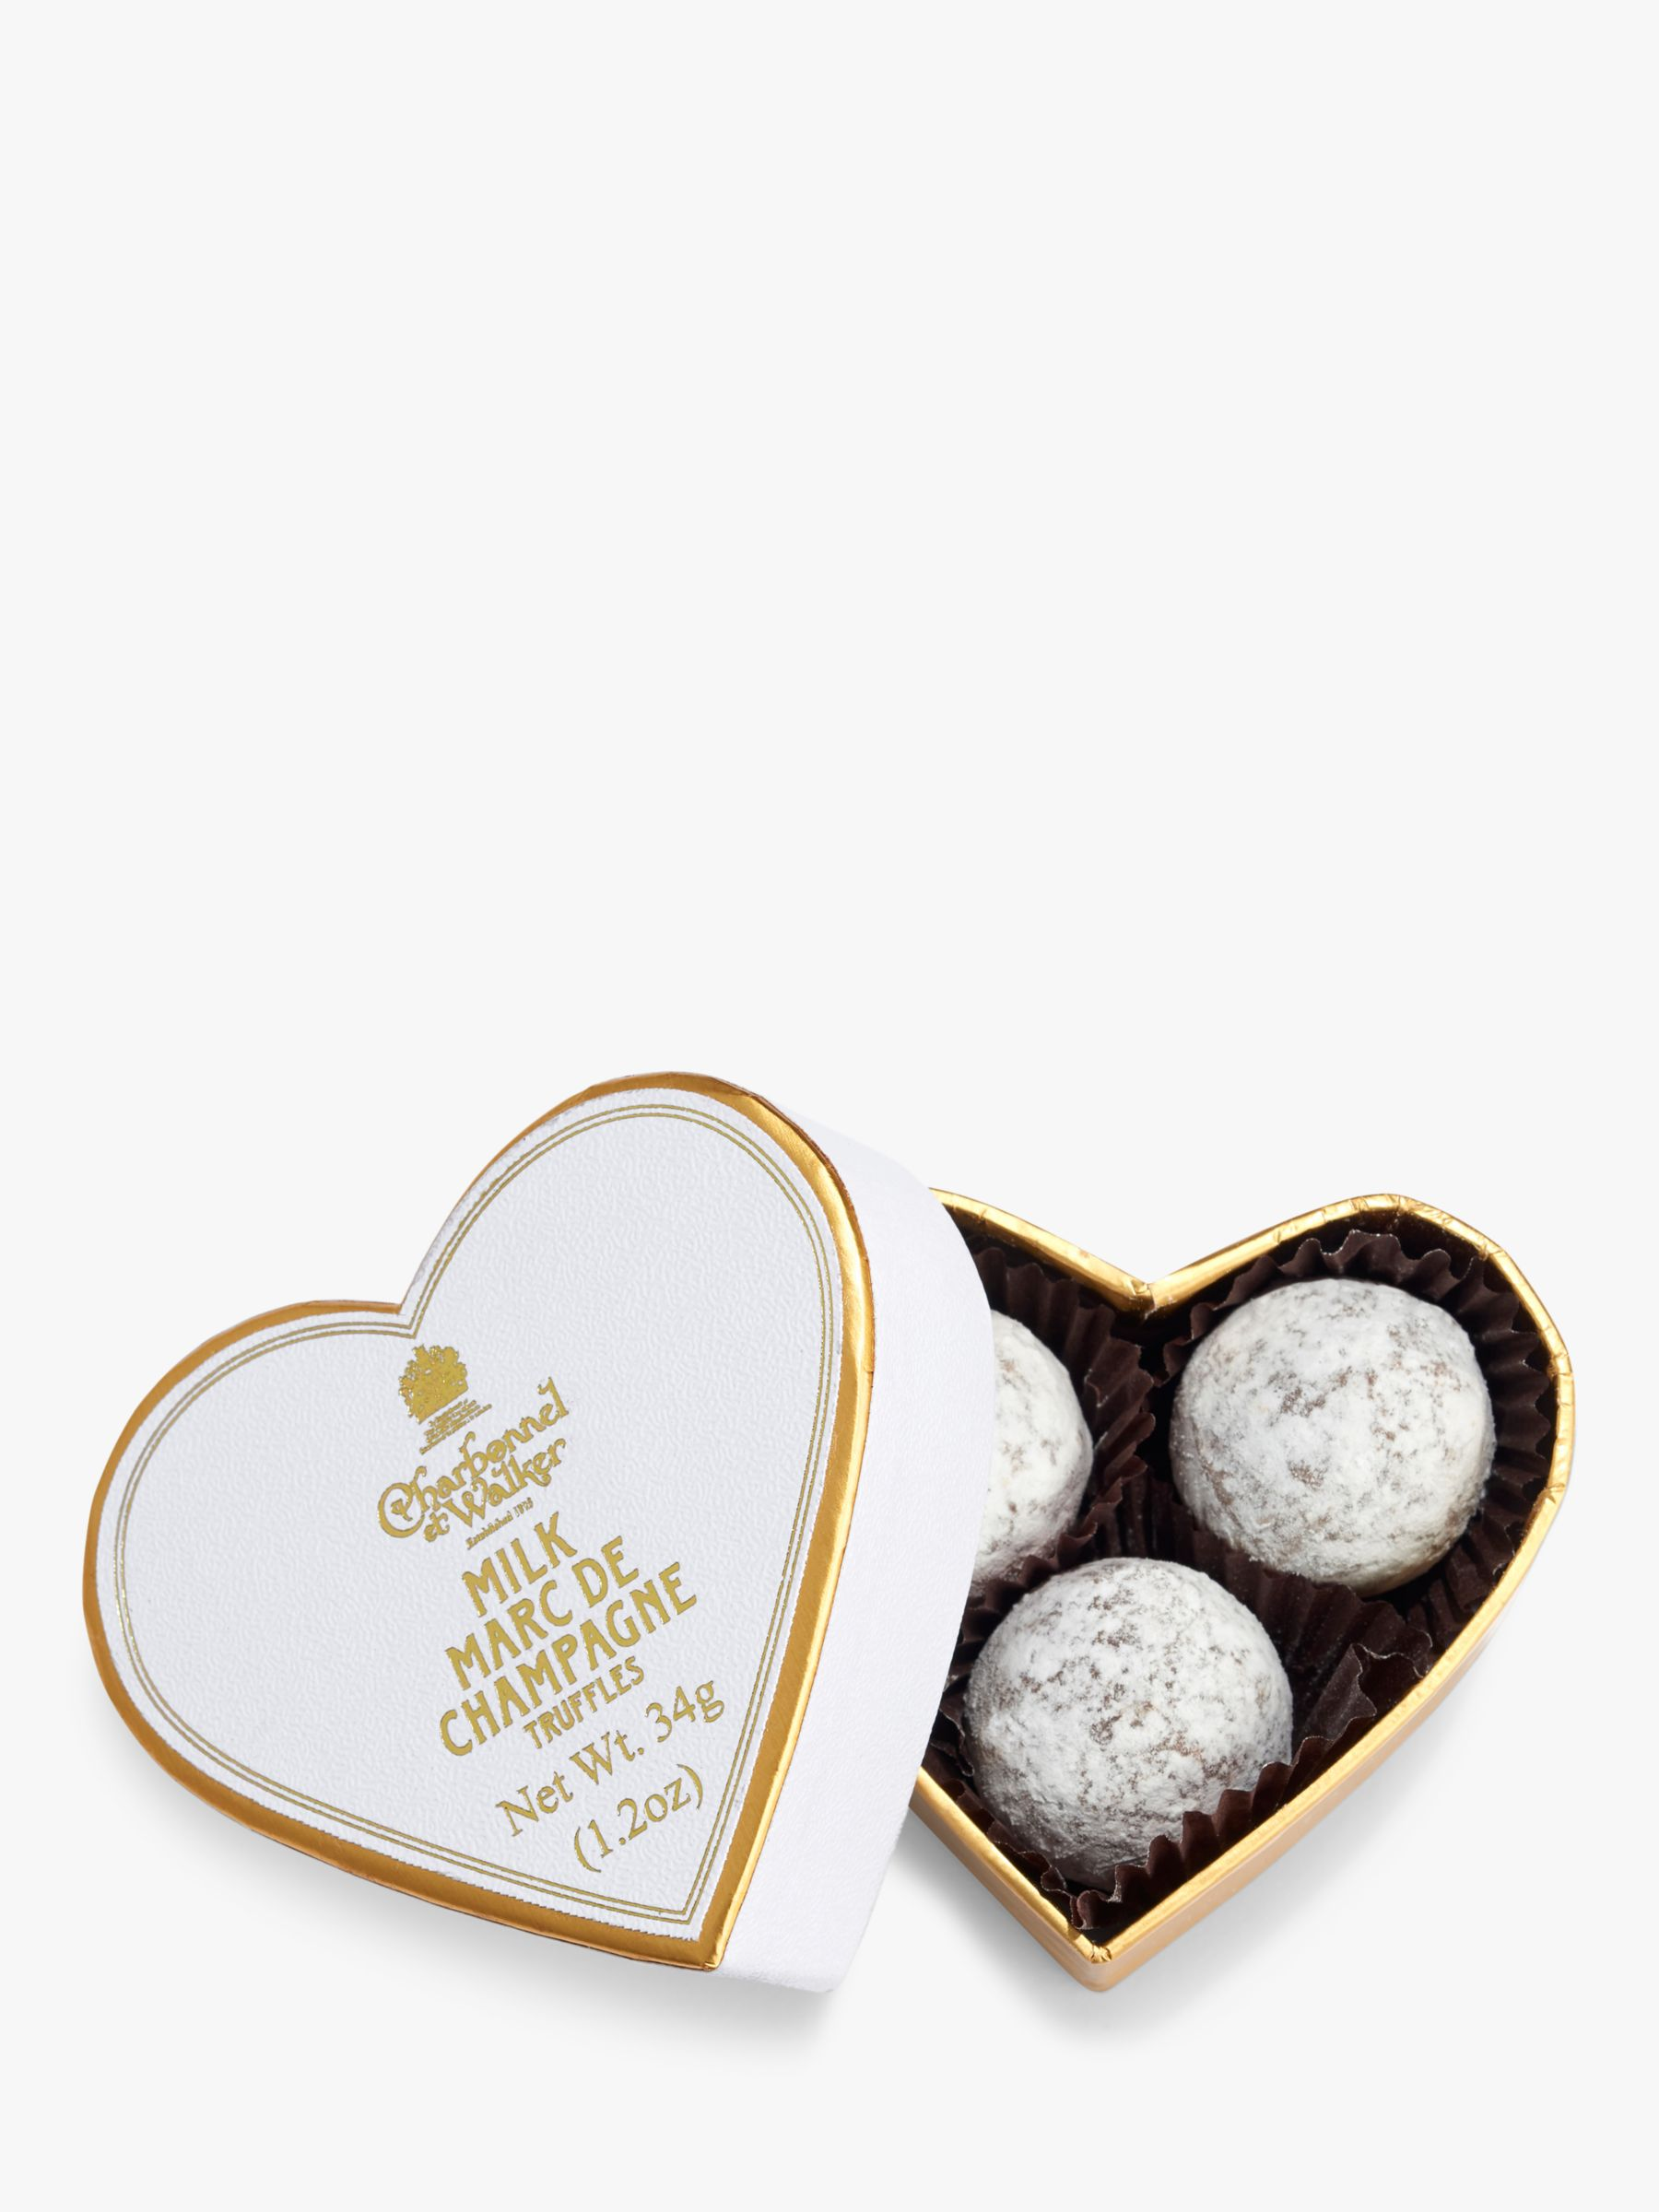 Charbonnel et Walker Charbonnel et Walker Mini White Heart with Milk Chocolate Champagne Truffles, 34g